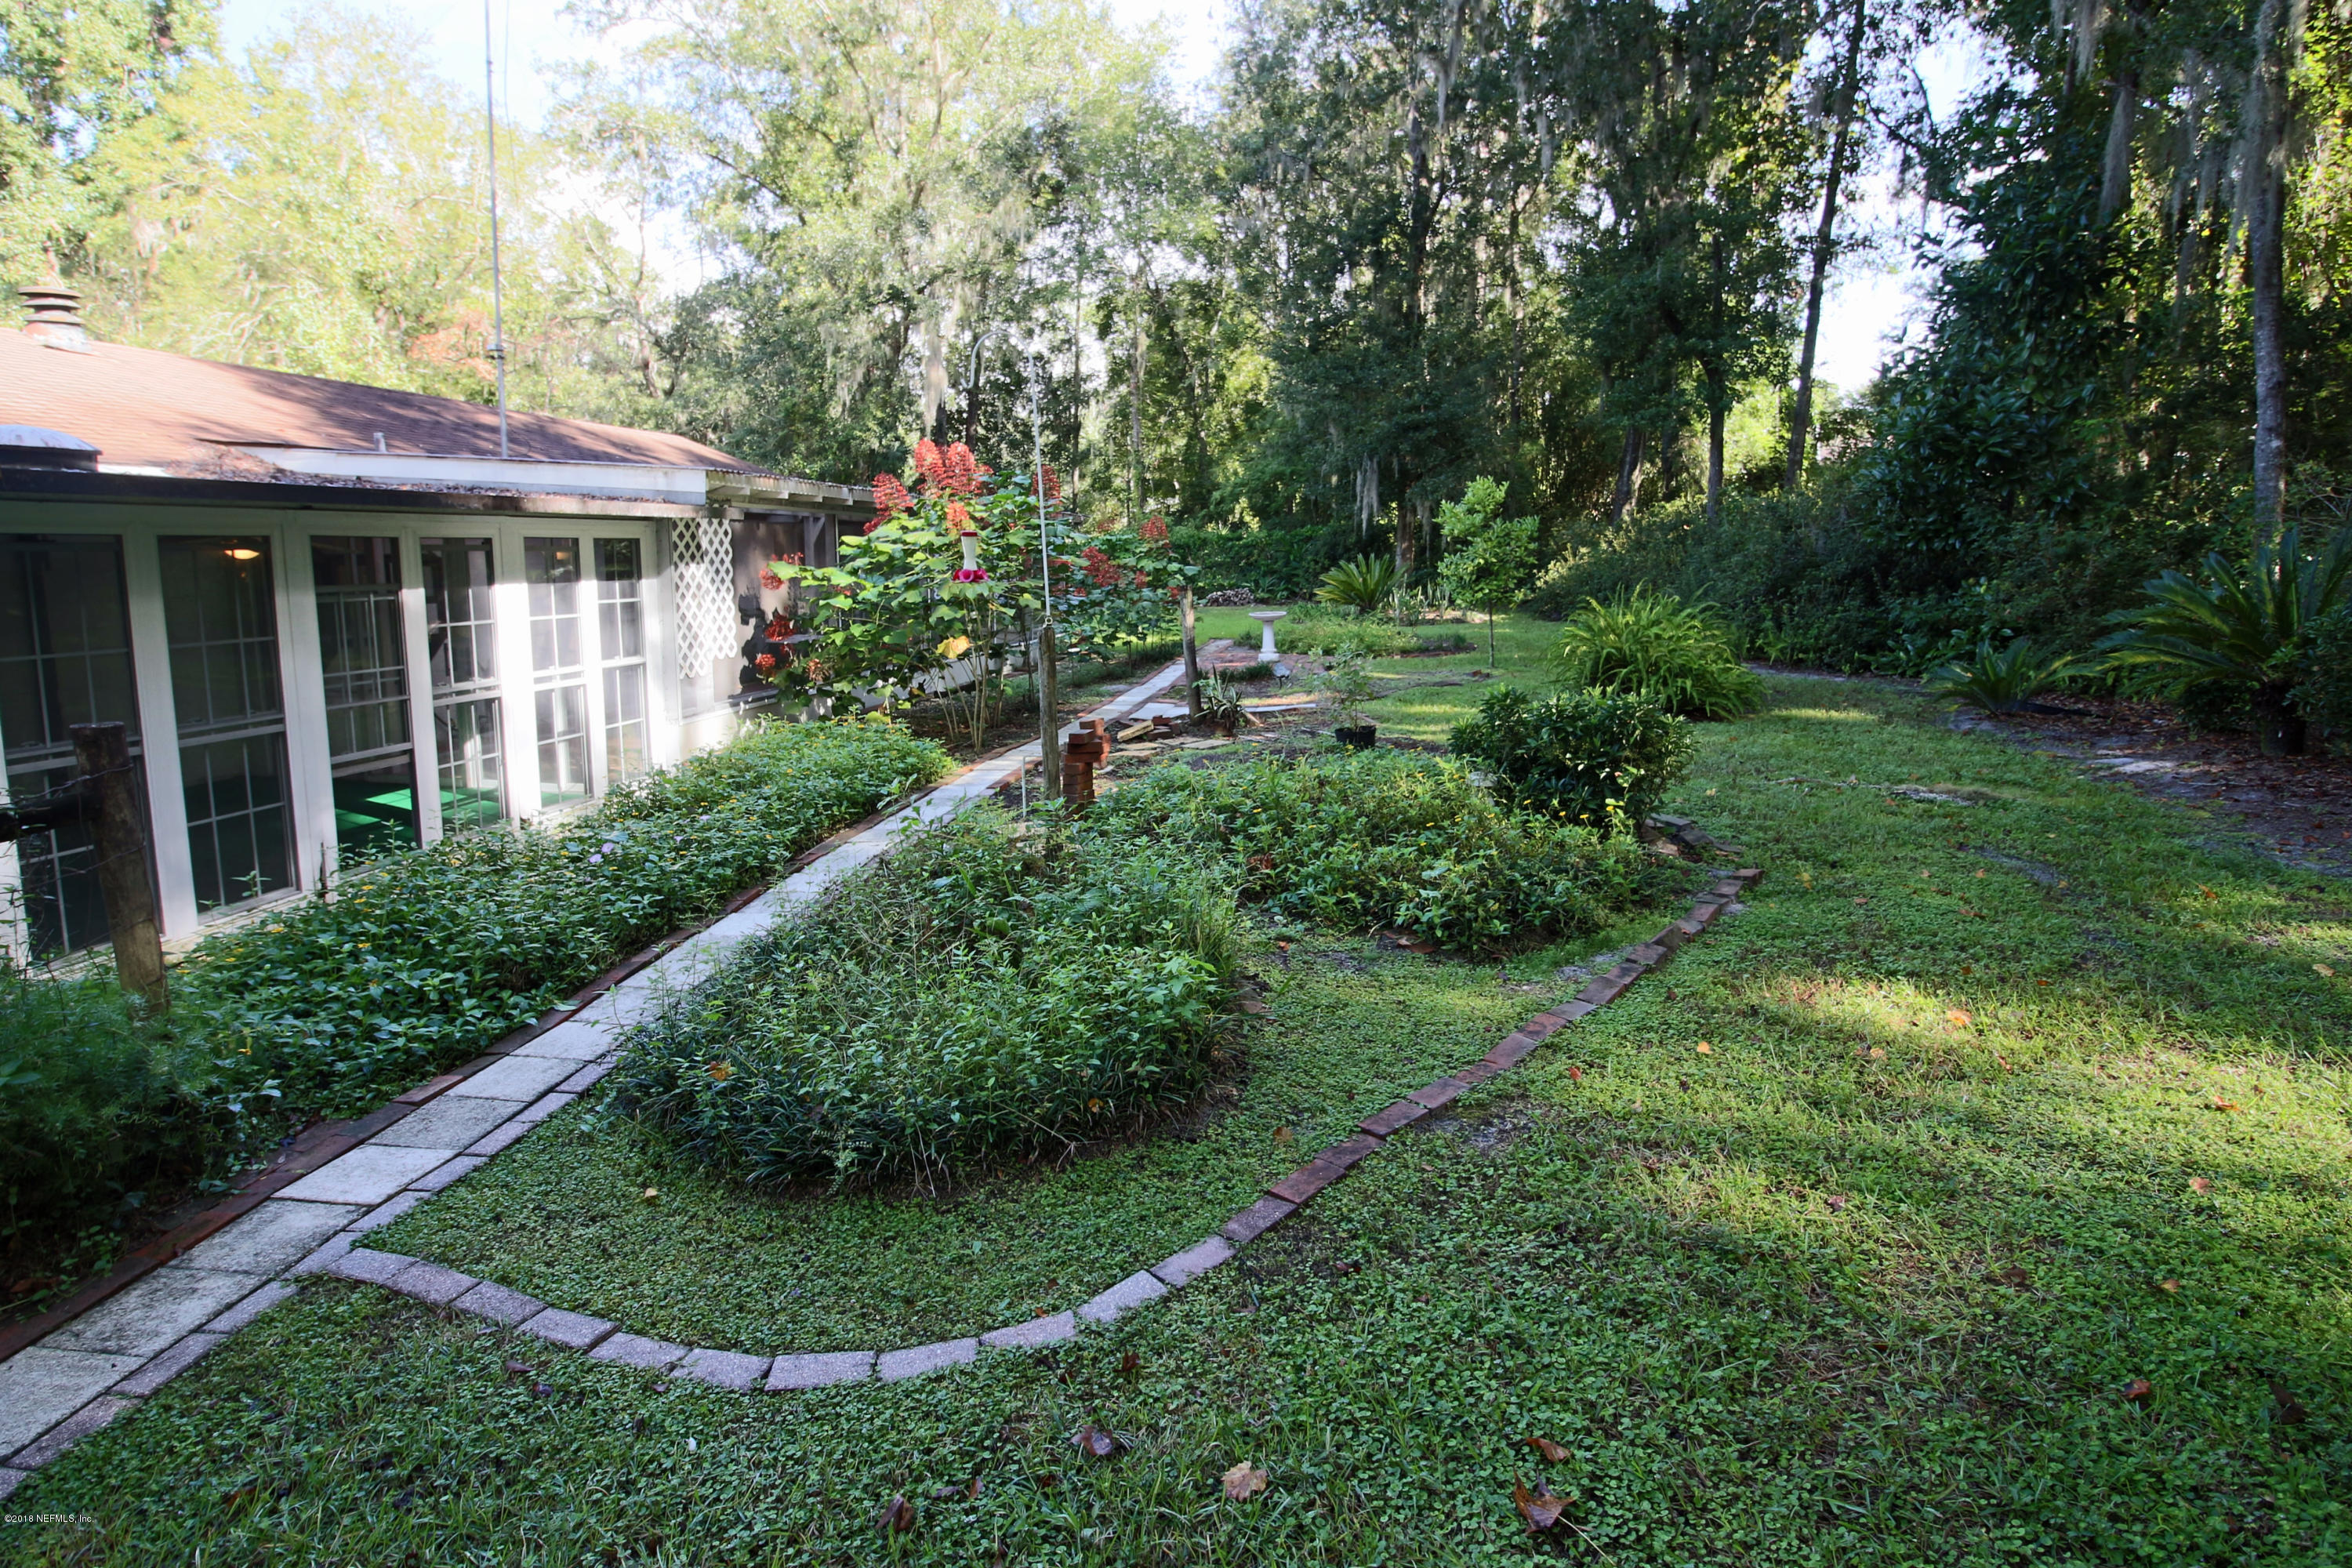 573 4TH, MELROSE, FLORIDA 32666, 3 Bedrooms Bedrooms, ,3 BathroomsBathrooms,Residential - single family,For sale,4TH,951993